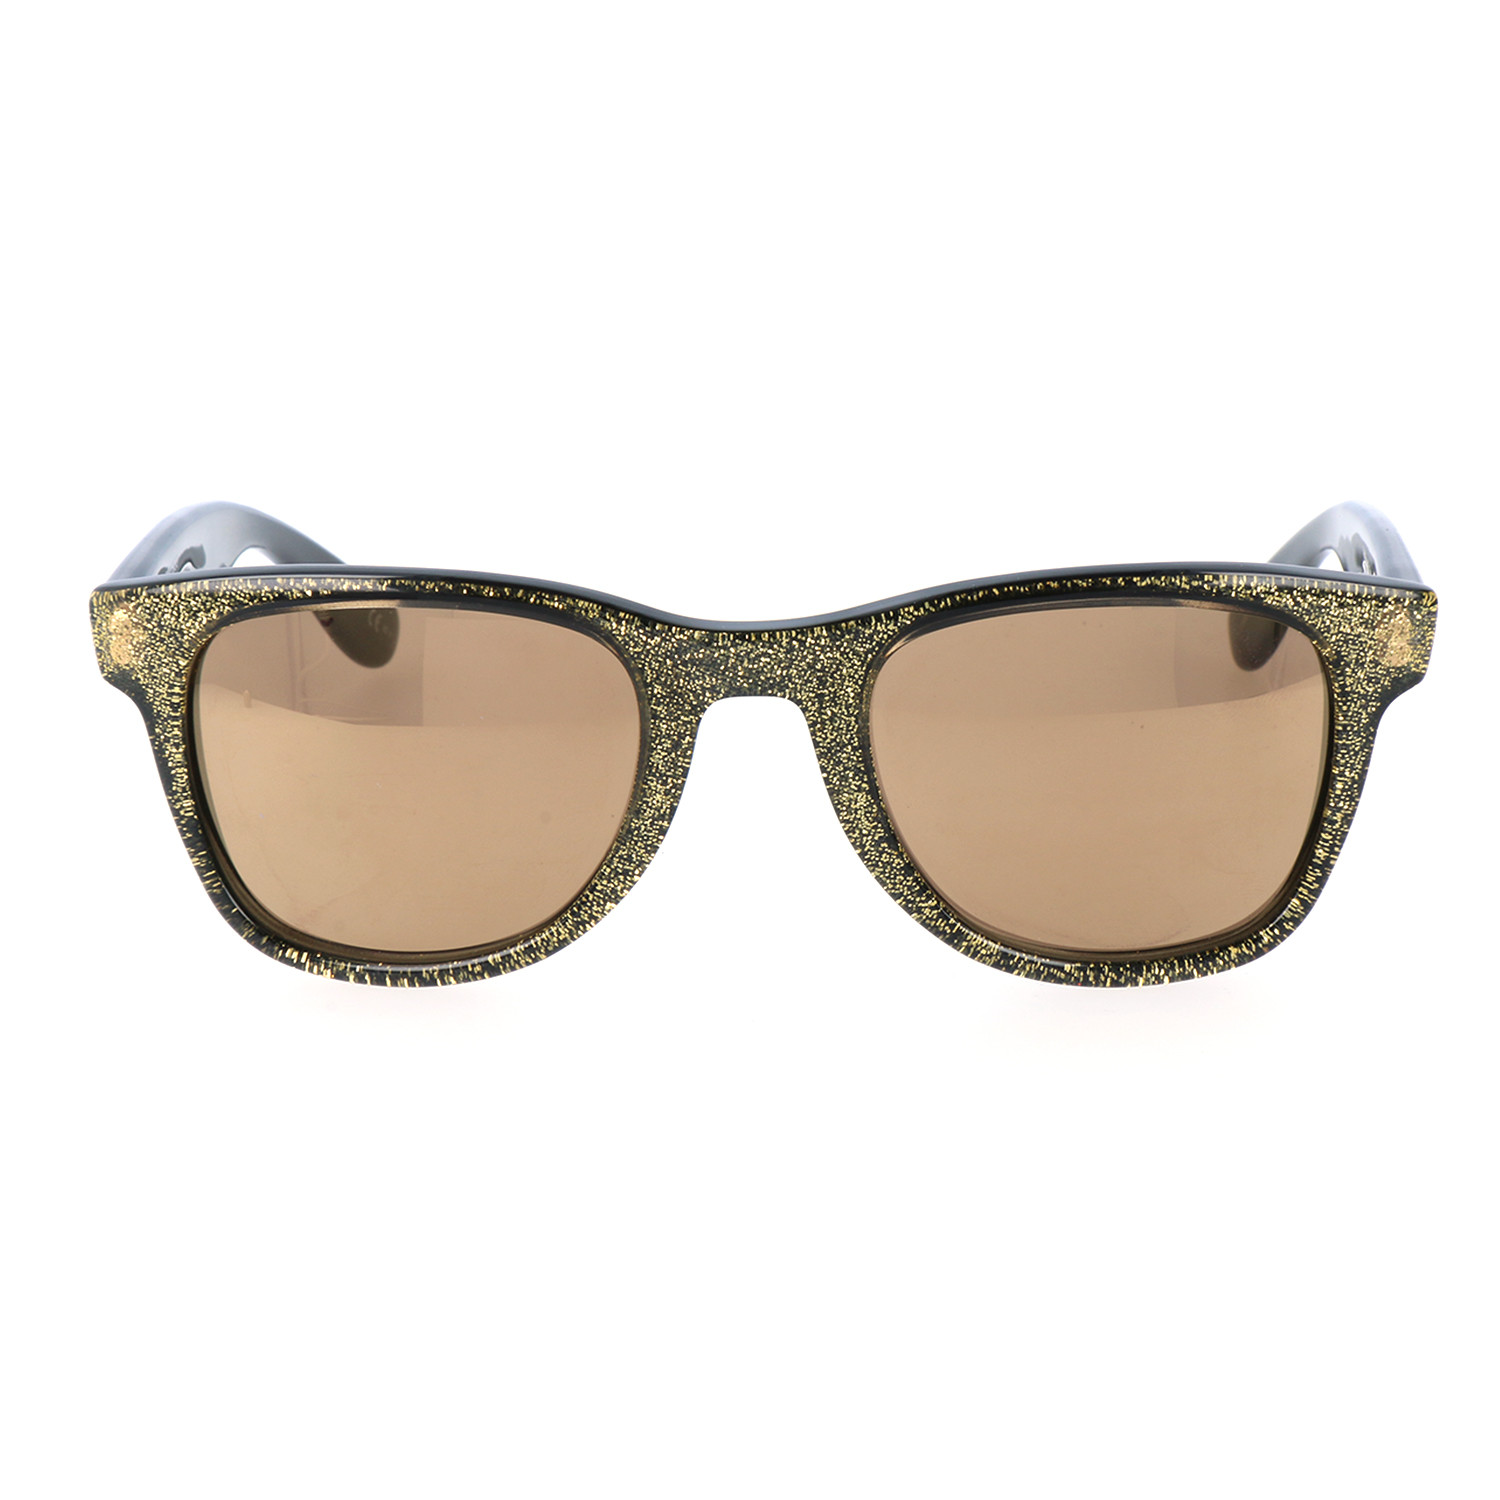 12d3d0ceccce Heidy Women s Sunglasses    Gold Glitter - Carrera by Jimmy Choo ...